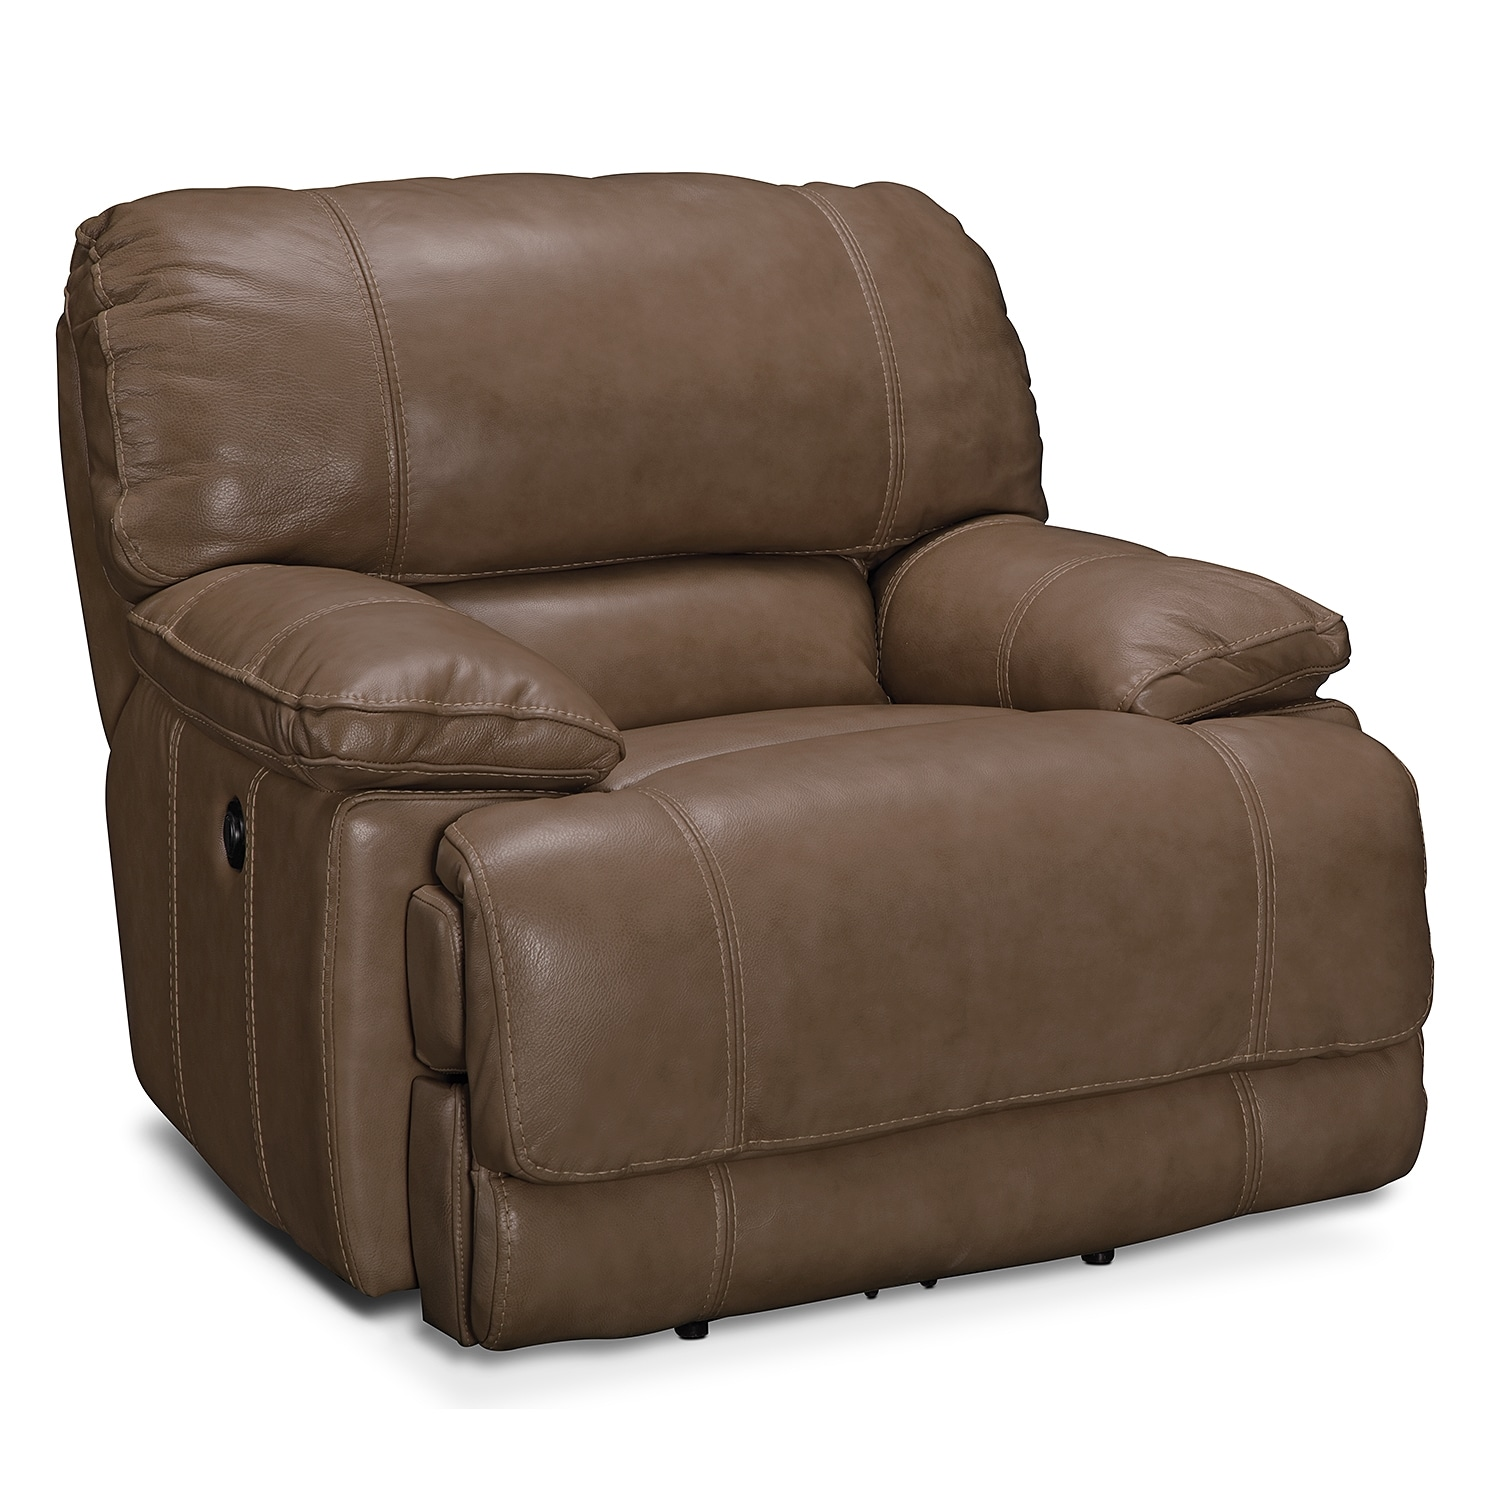 Living Room Furniture - Clinton Taupe Power Recliner